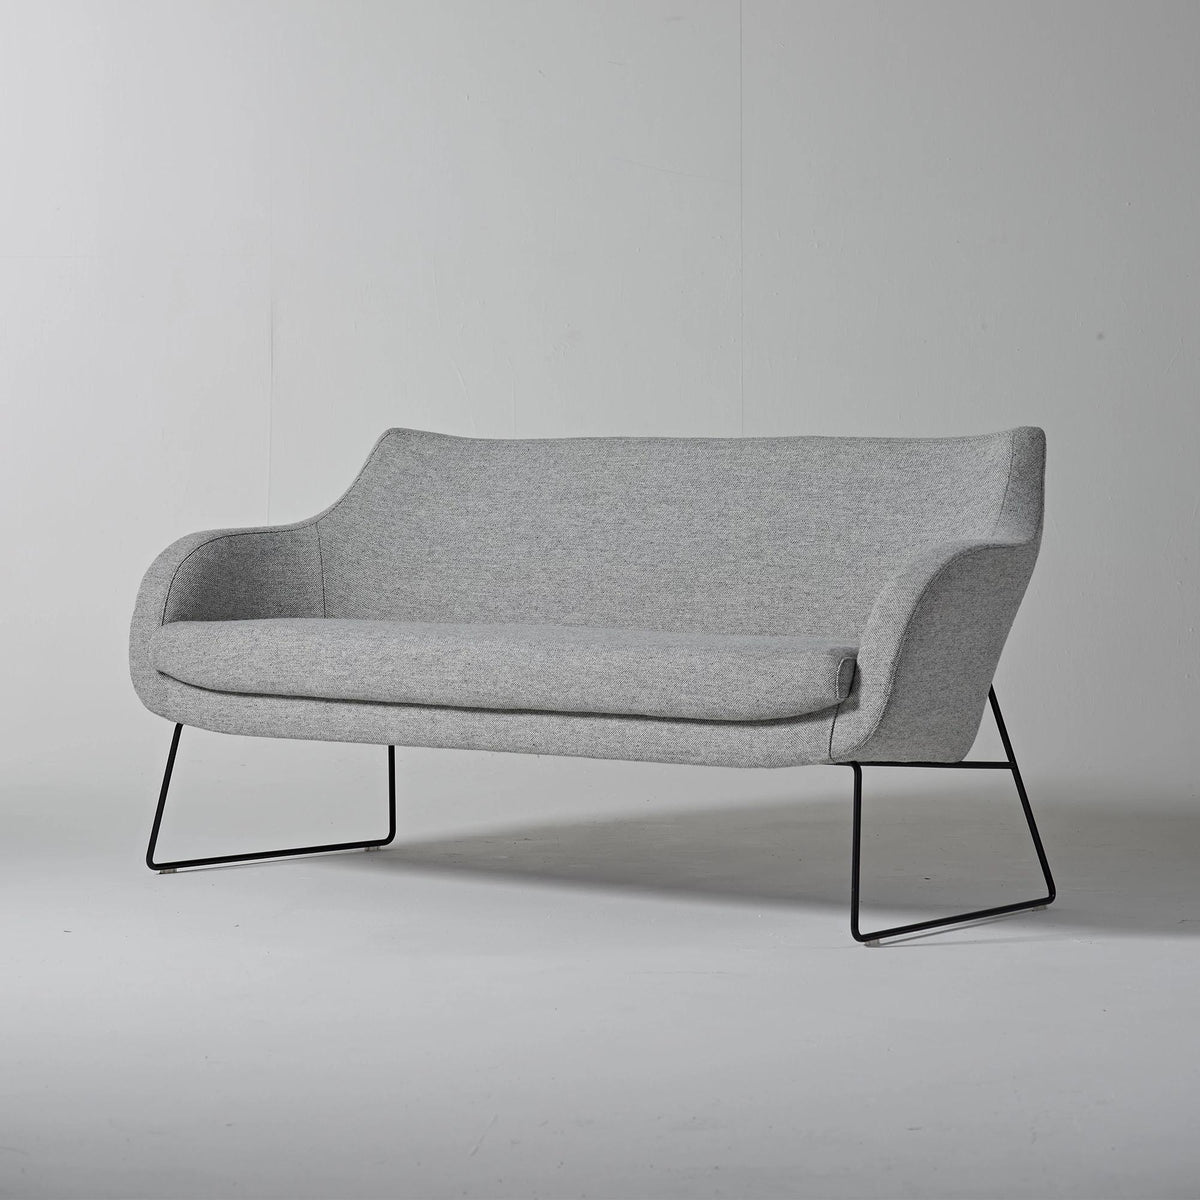 Roger Lewis Office Sintra Medium Sofa